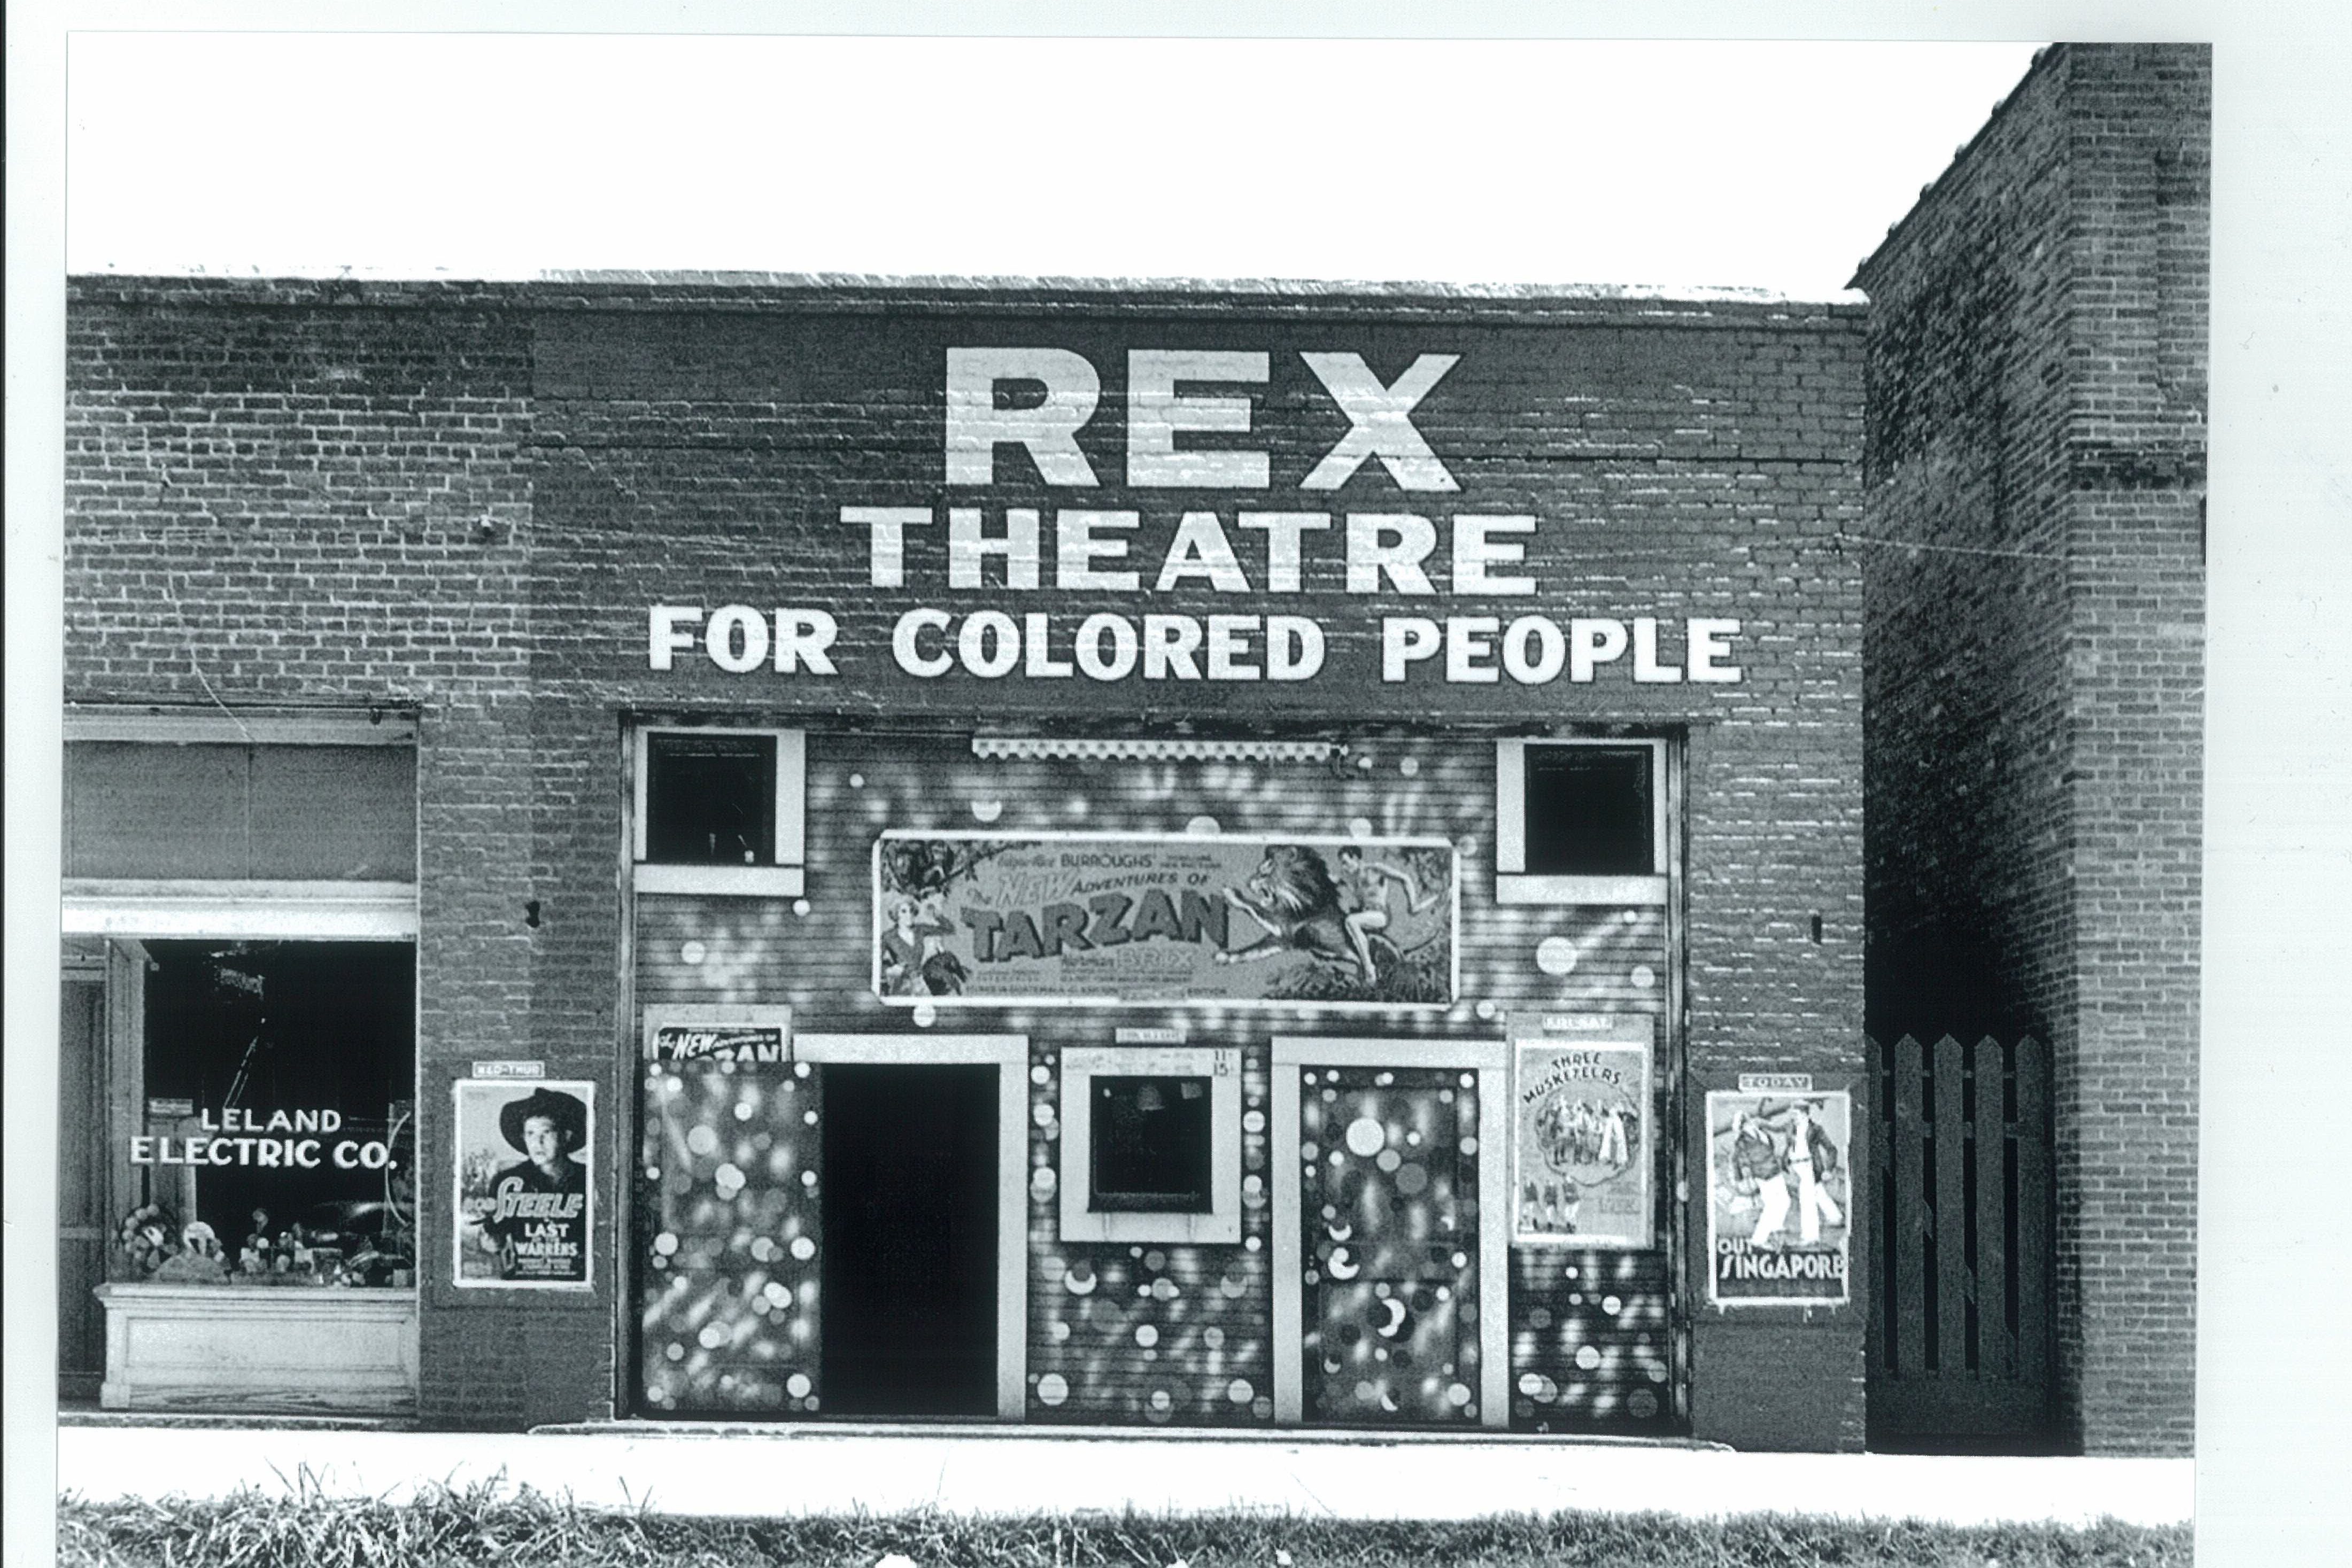 Postcard image of the Rex Theatre in Leland, MS.